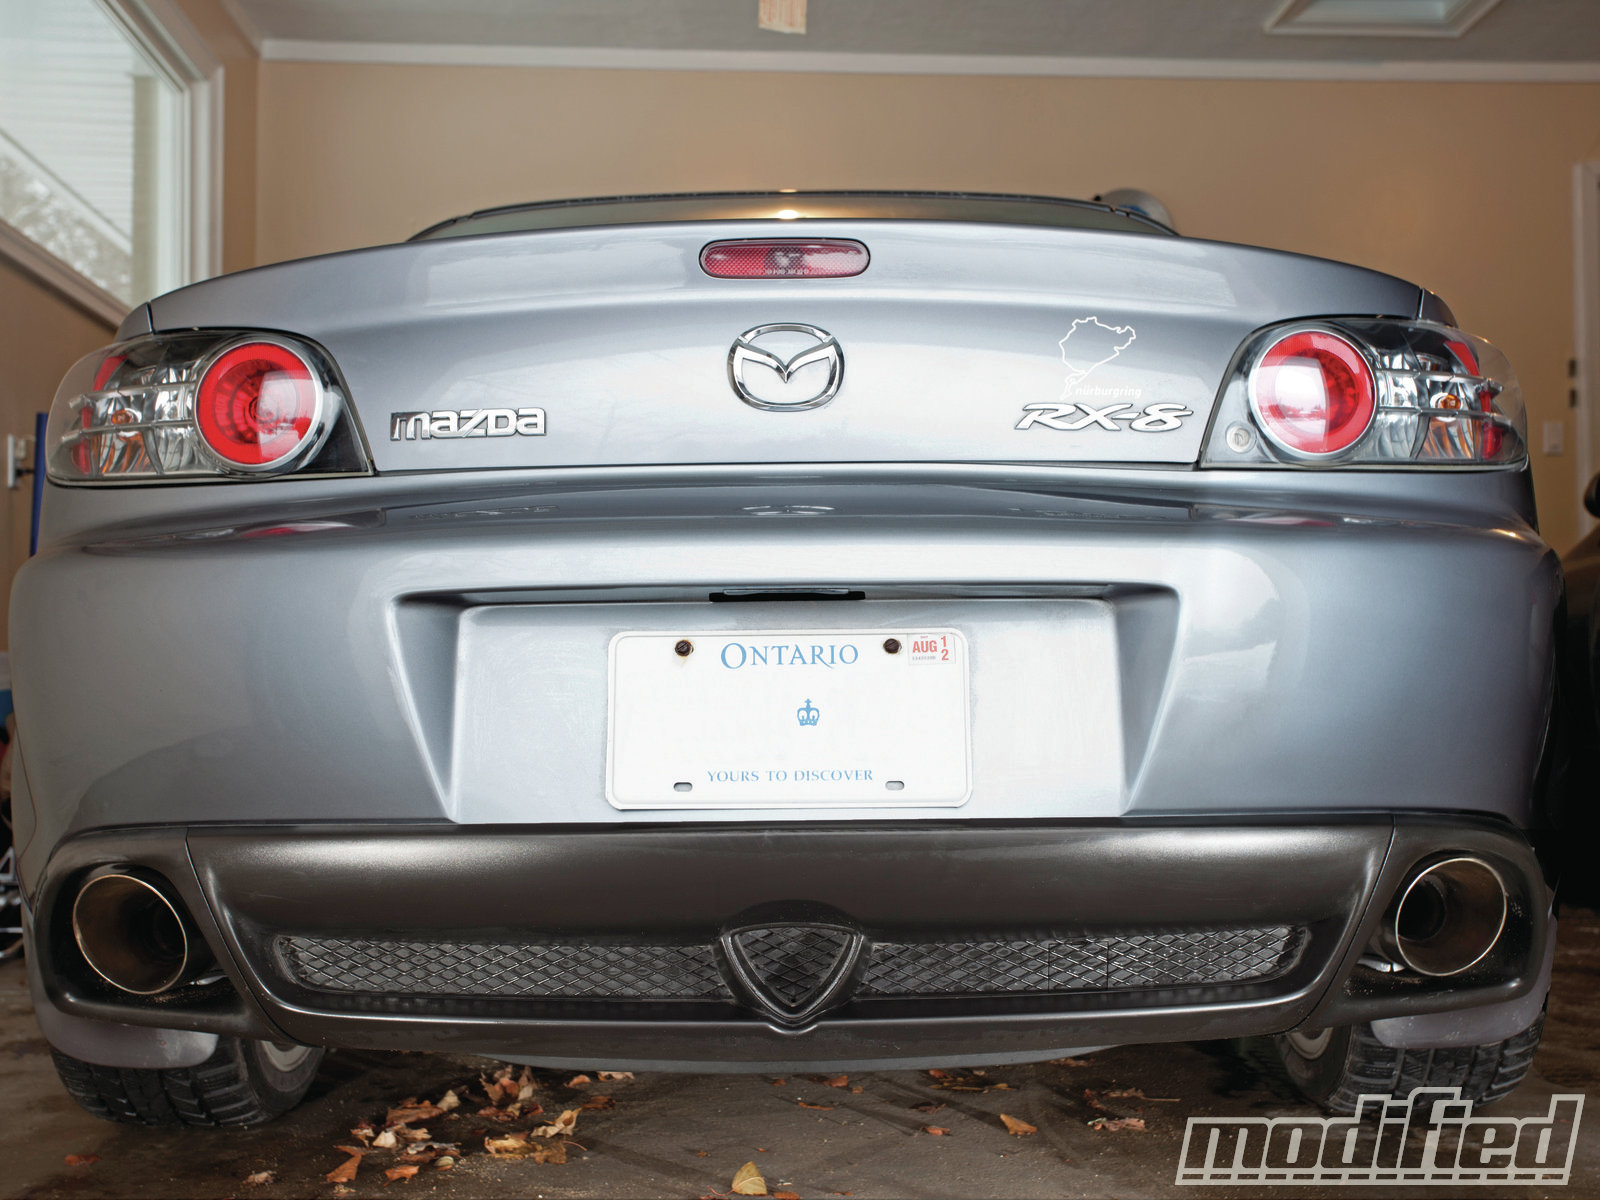 2005 Mazda RX-8 - Adding Bark & Bling - Project RX-8